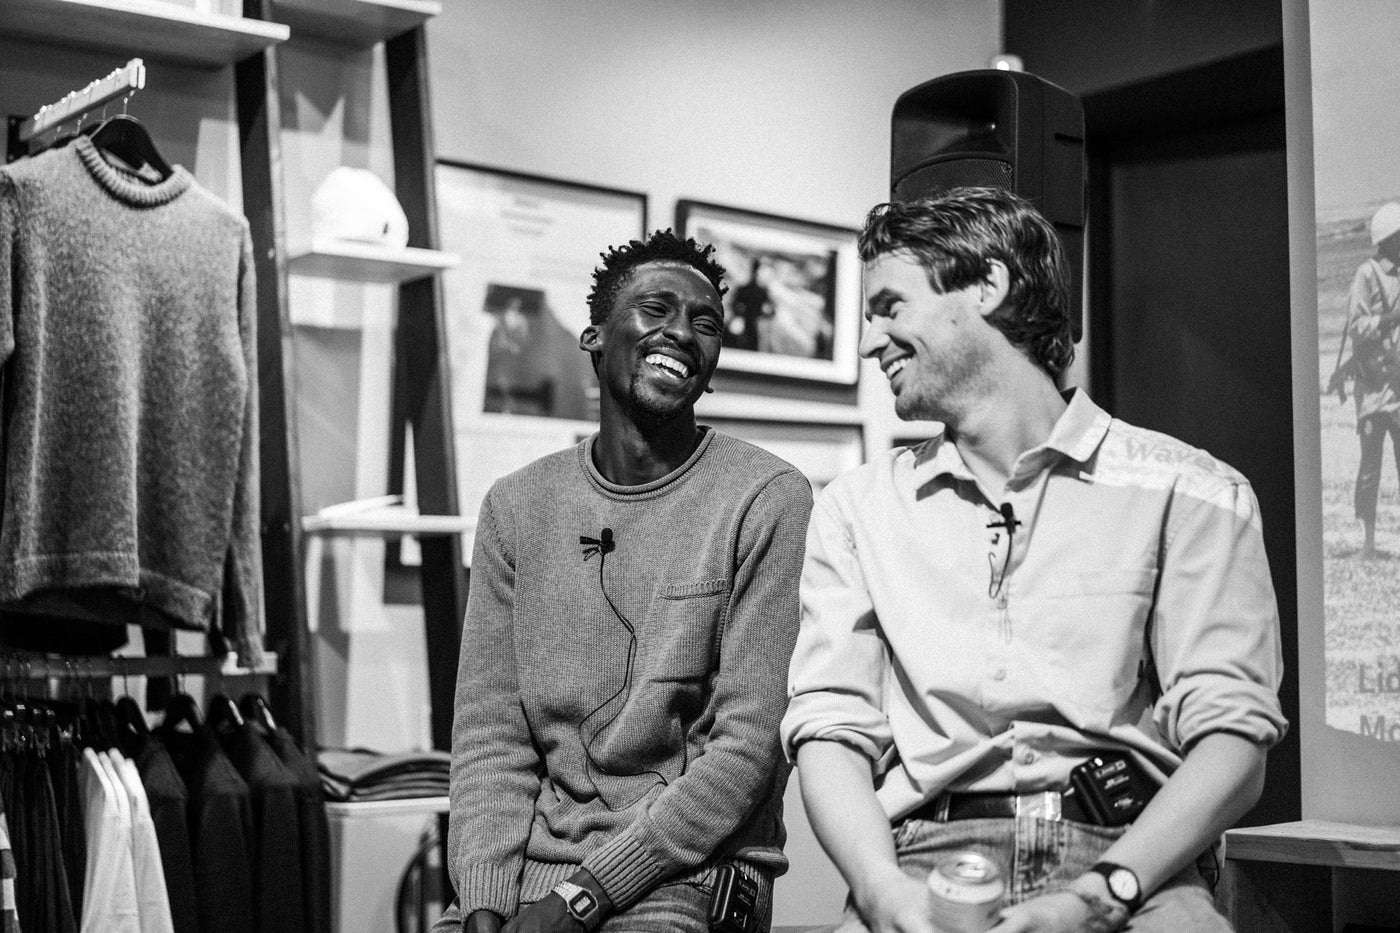 Jamie Marshall & Apish Tshetsha share a laugh at the W4C talk night in Bristol